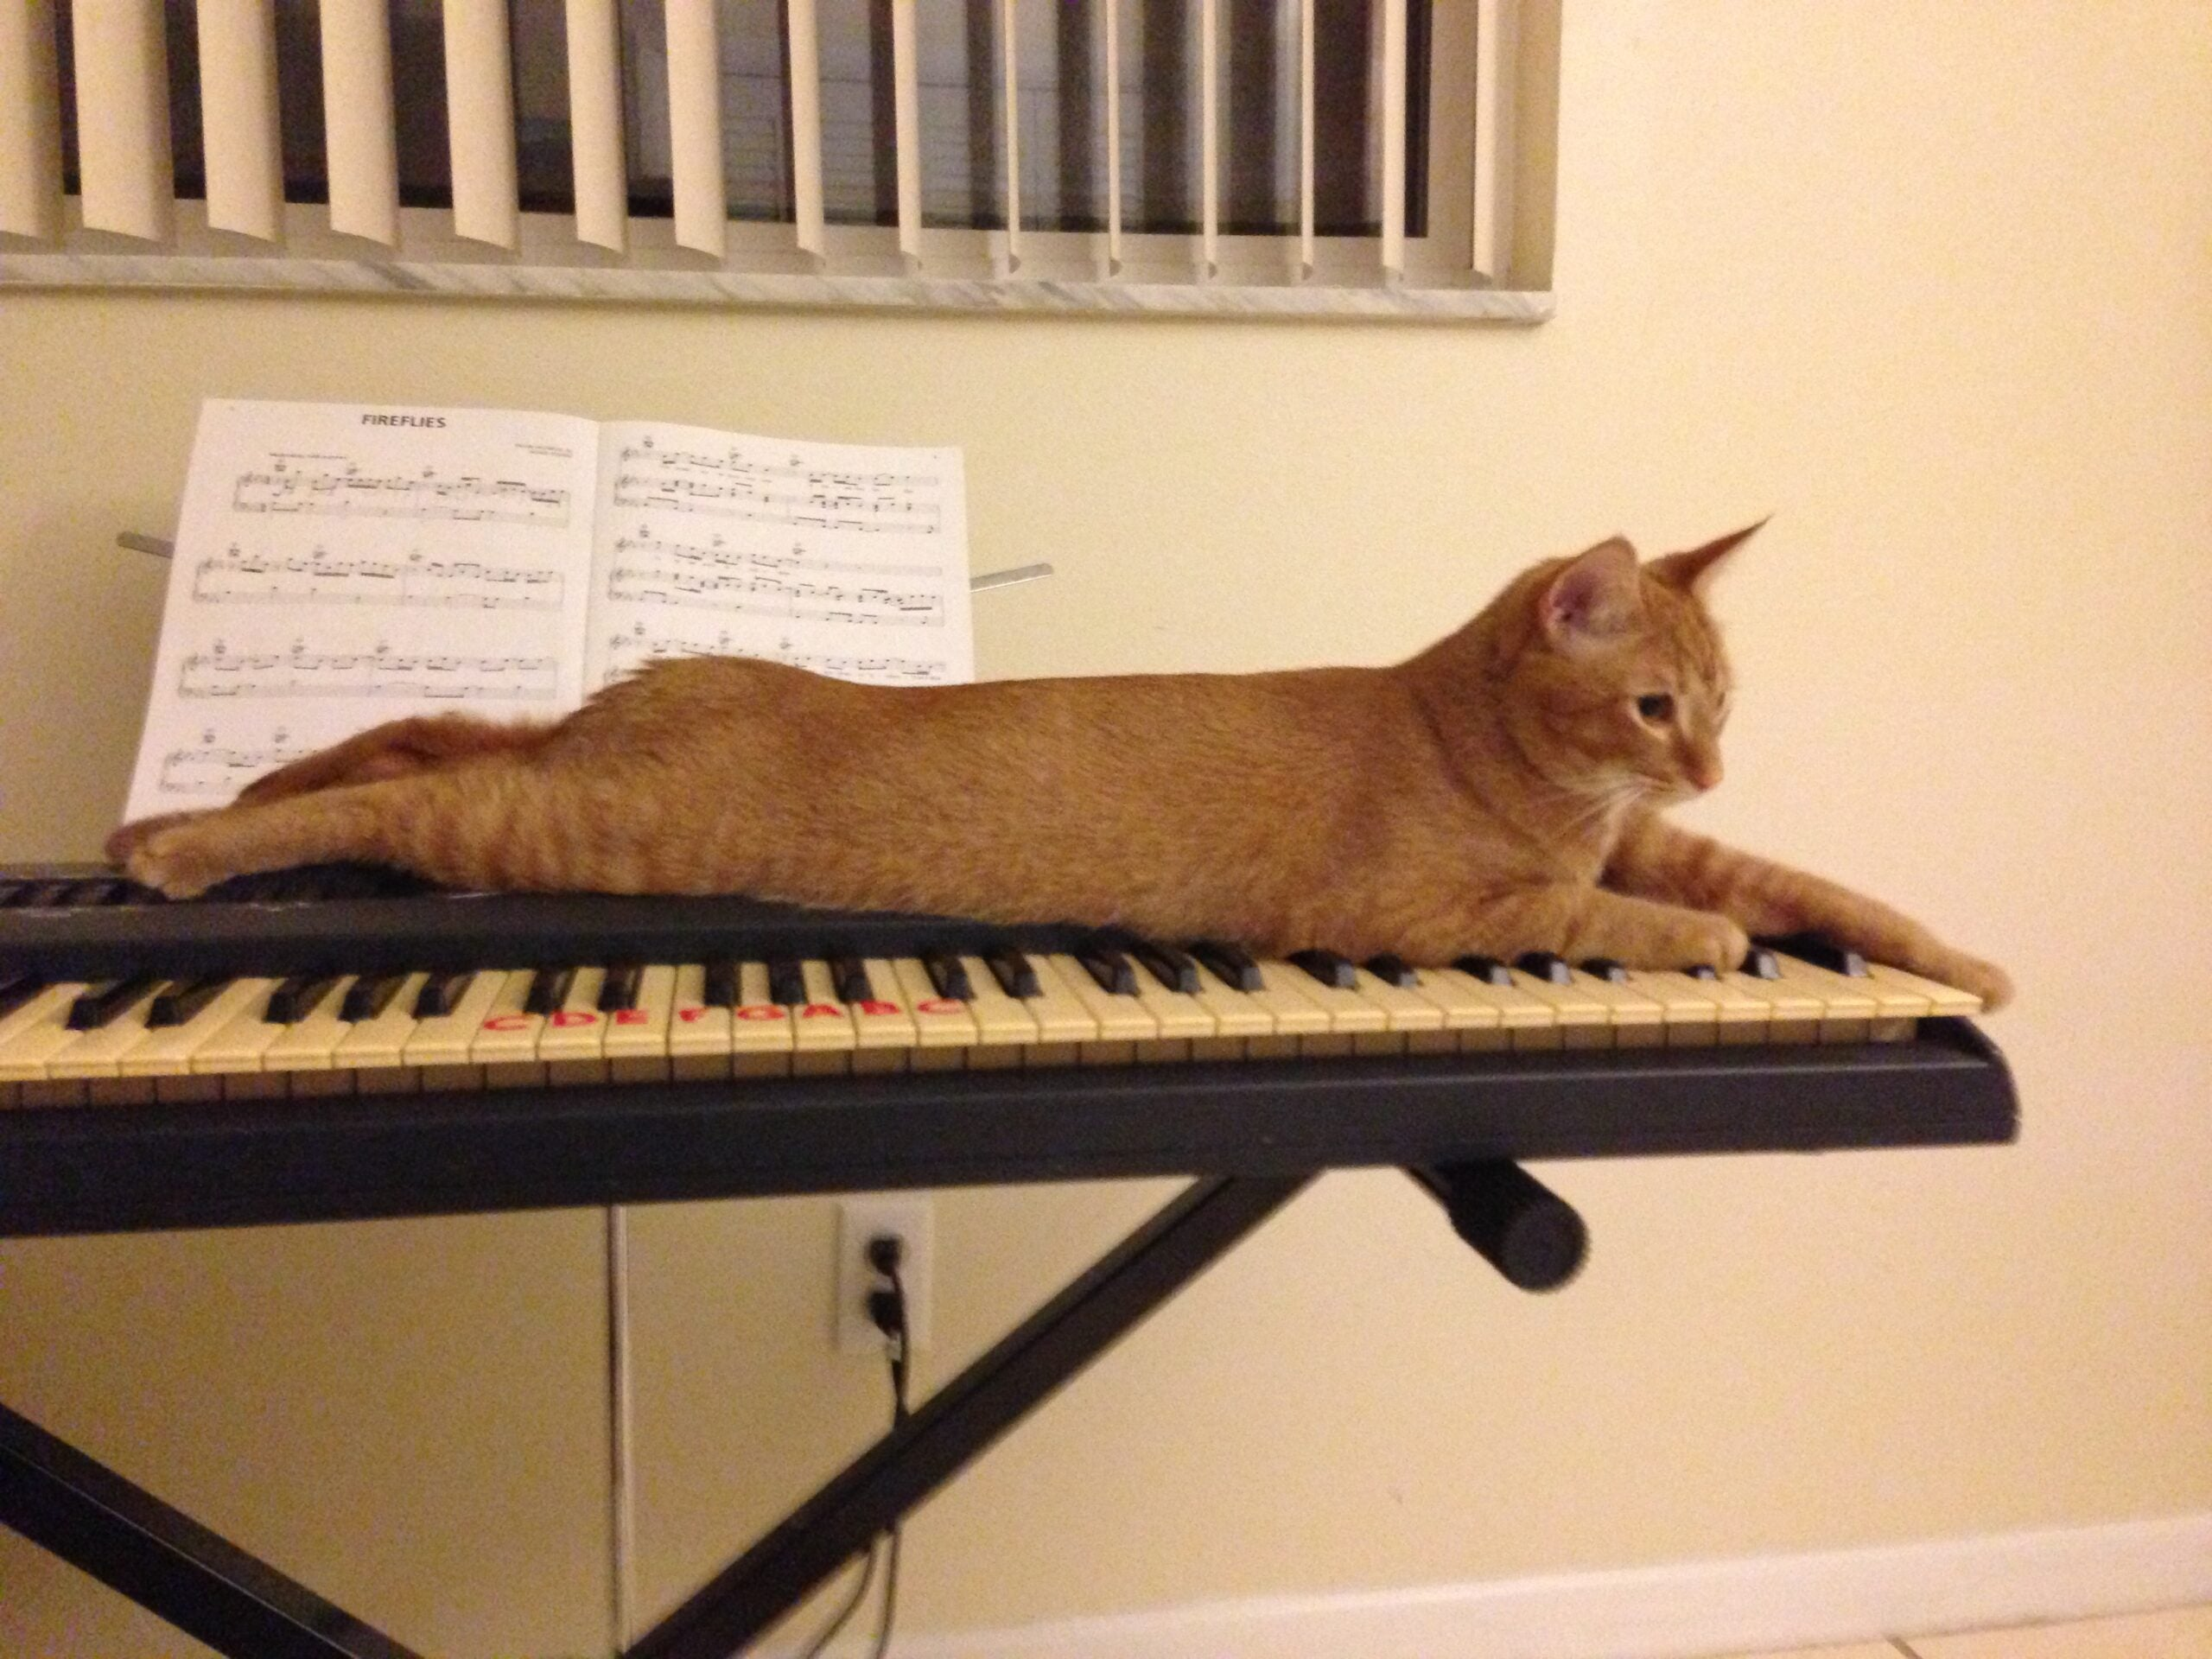 Scientists Have Composed Music Especially For Cats